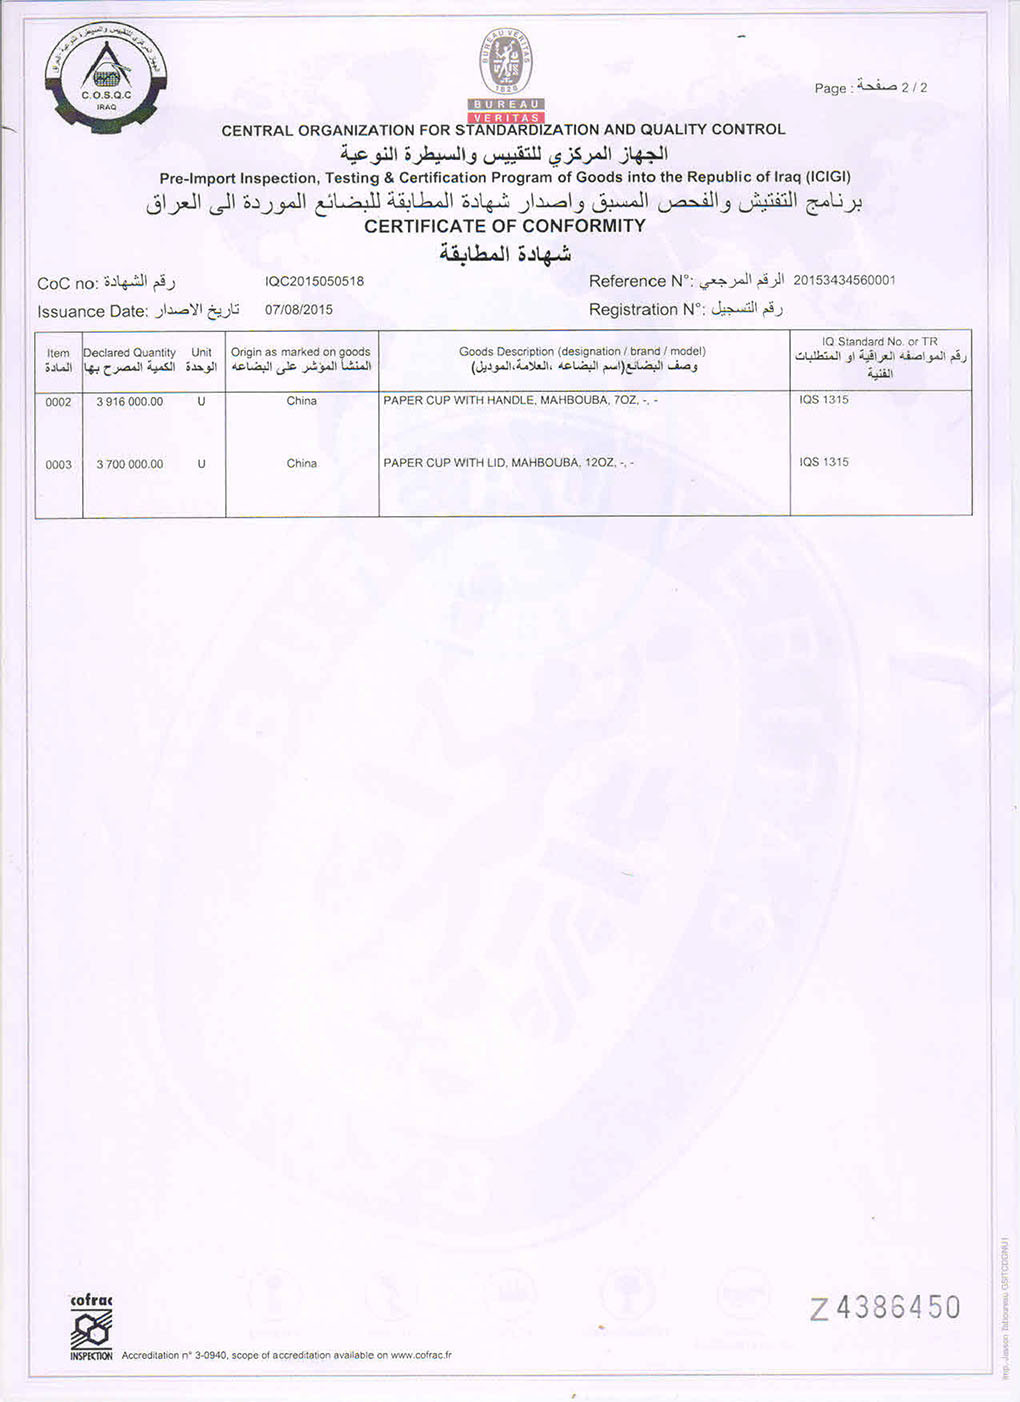 BV certificate for paper cups for Iraq market